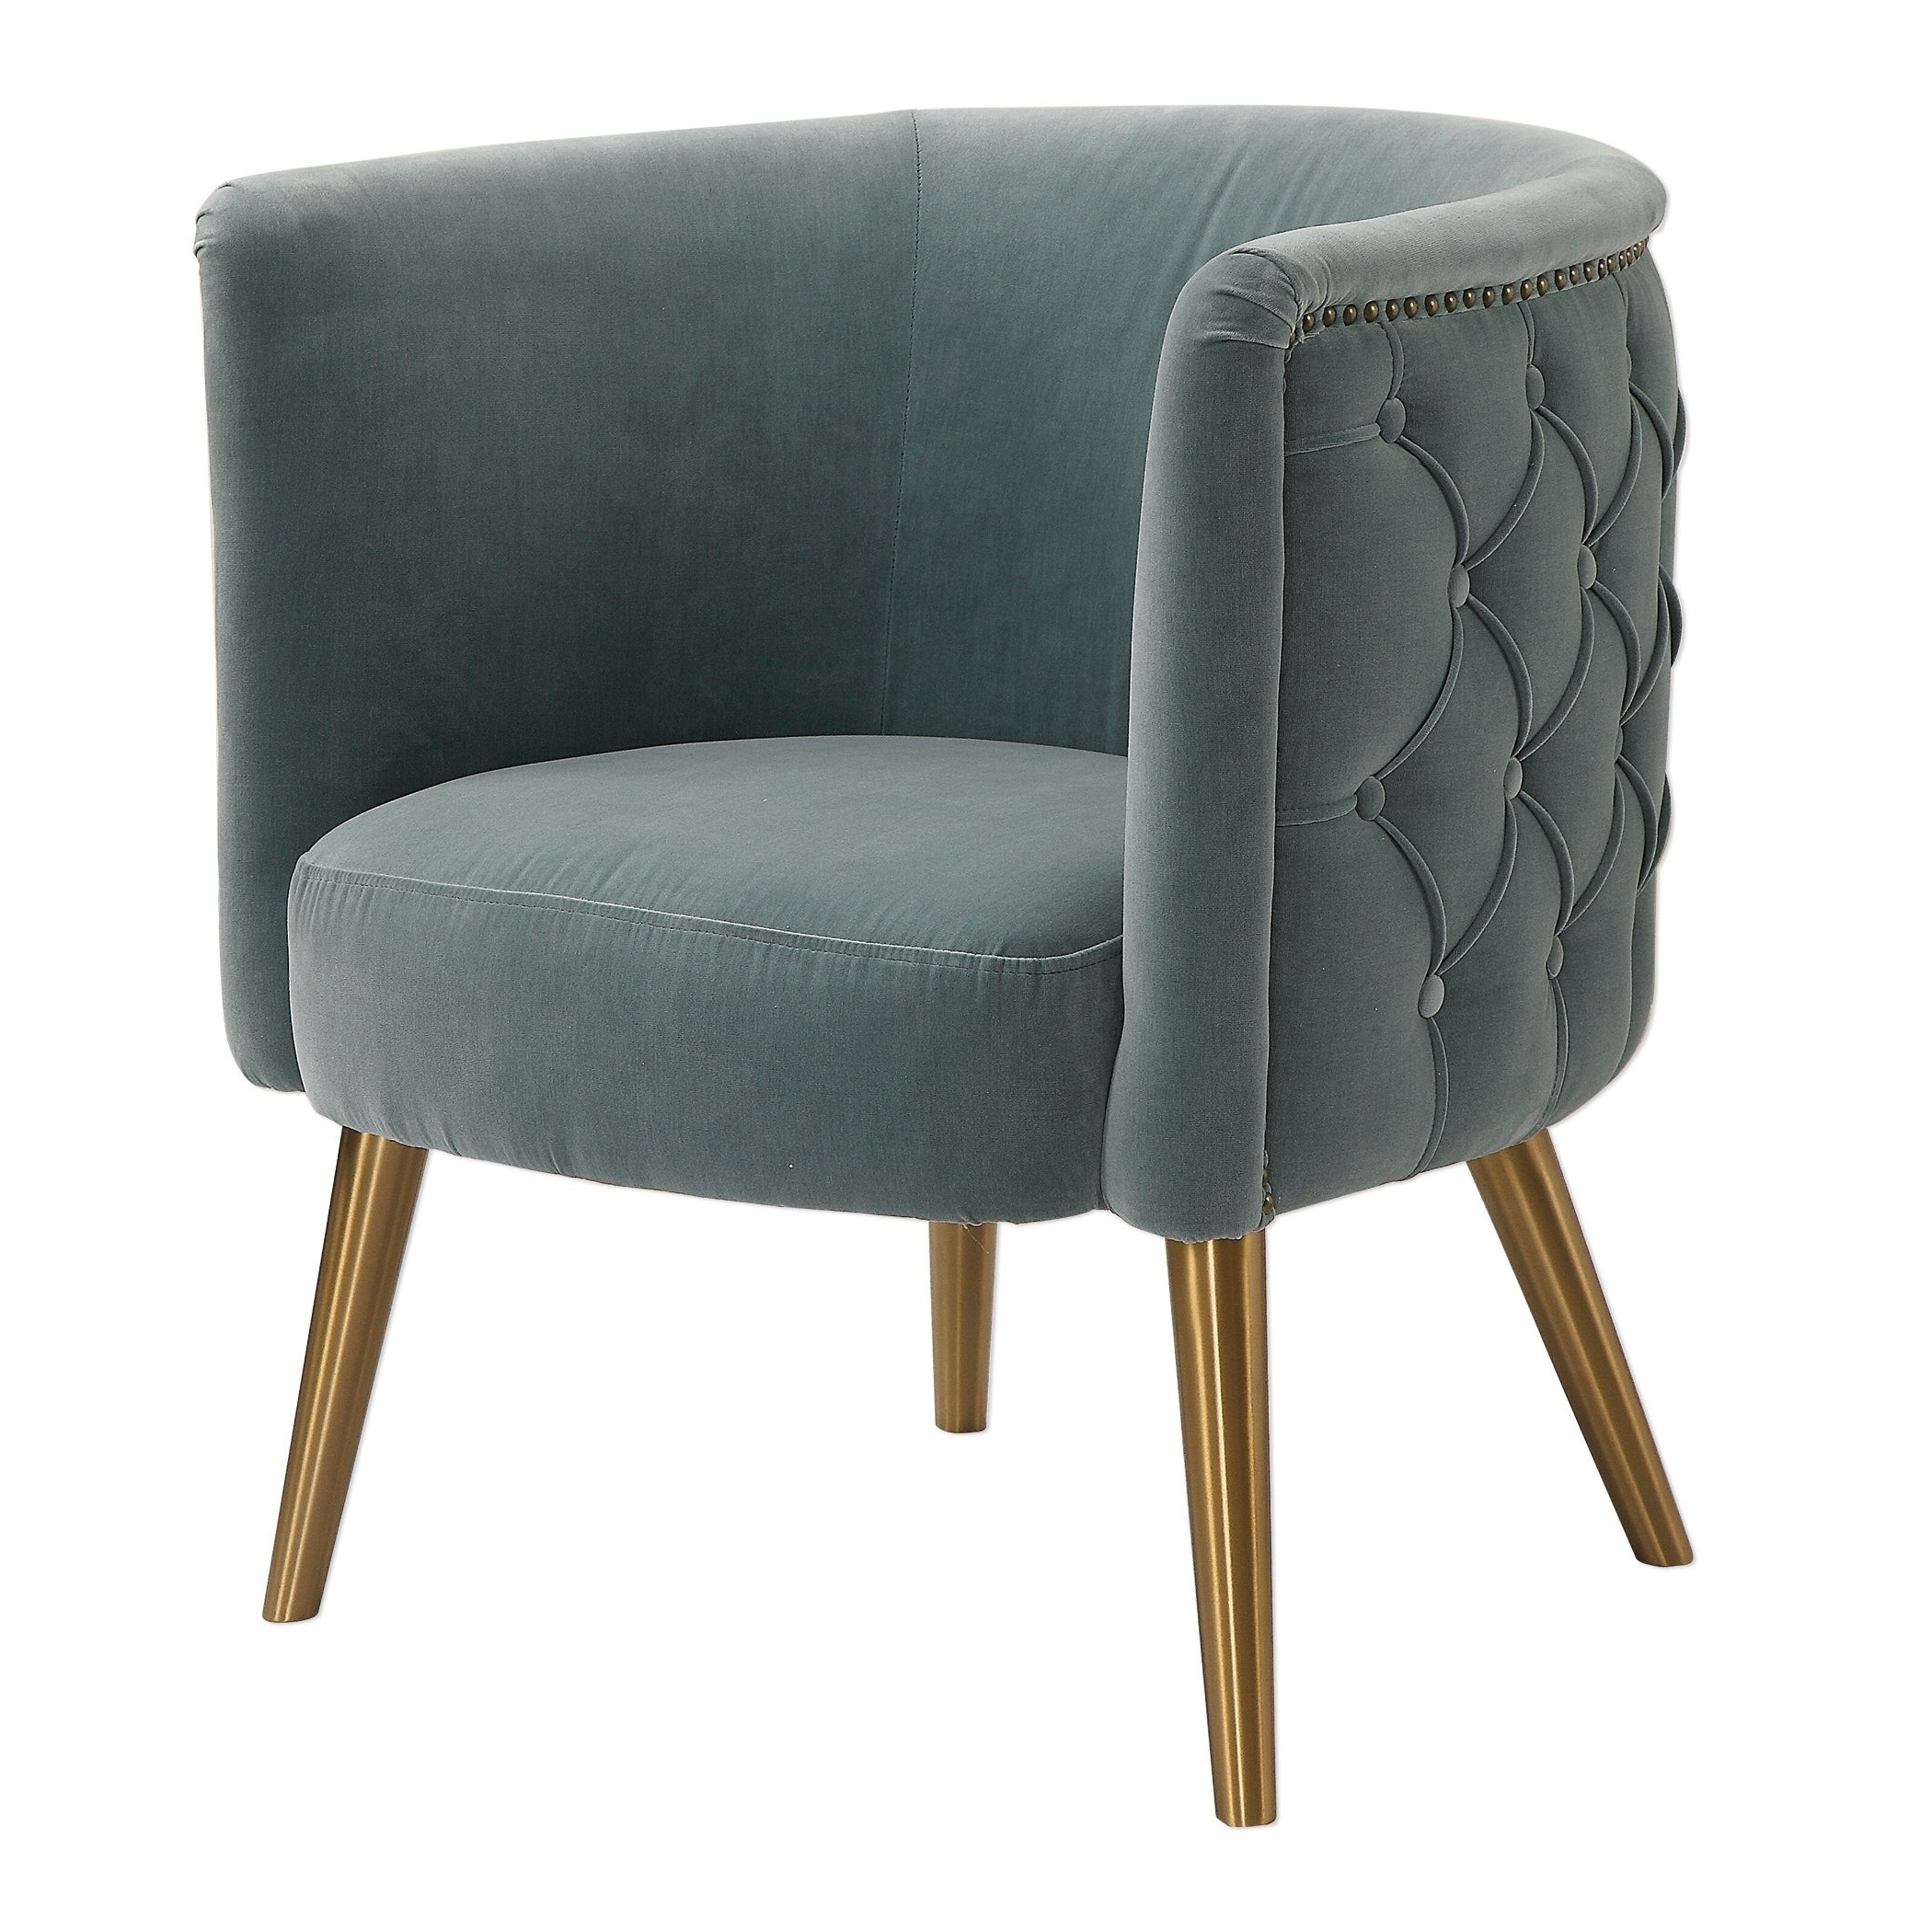 Uttermost Haider Brushed Brass Accent Chair With Widely Used Artemi Barrel Chair And Ottoman Sets (View 15 of 20)